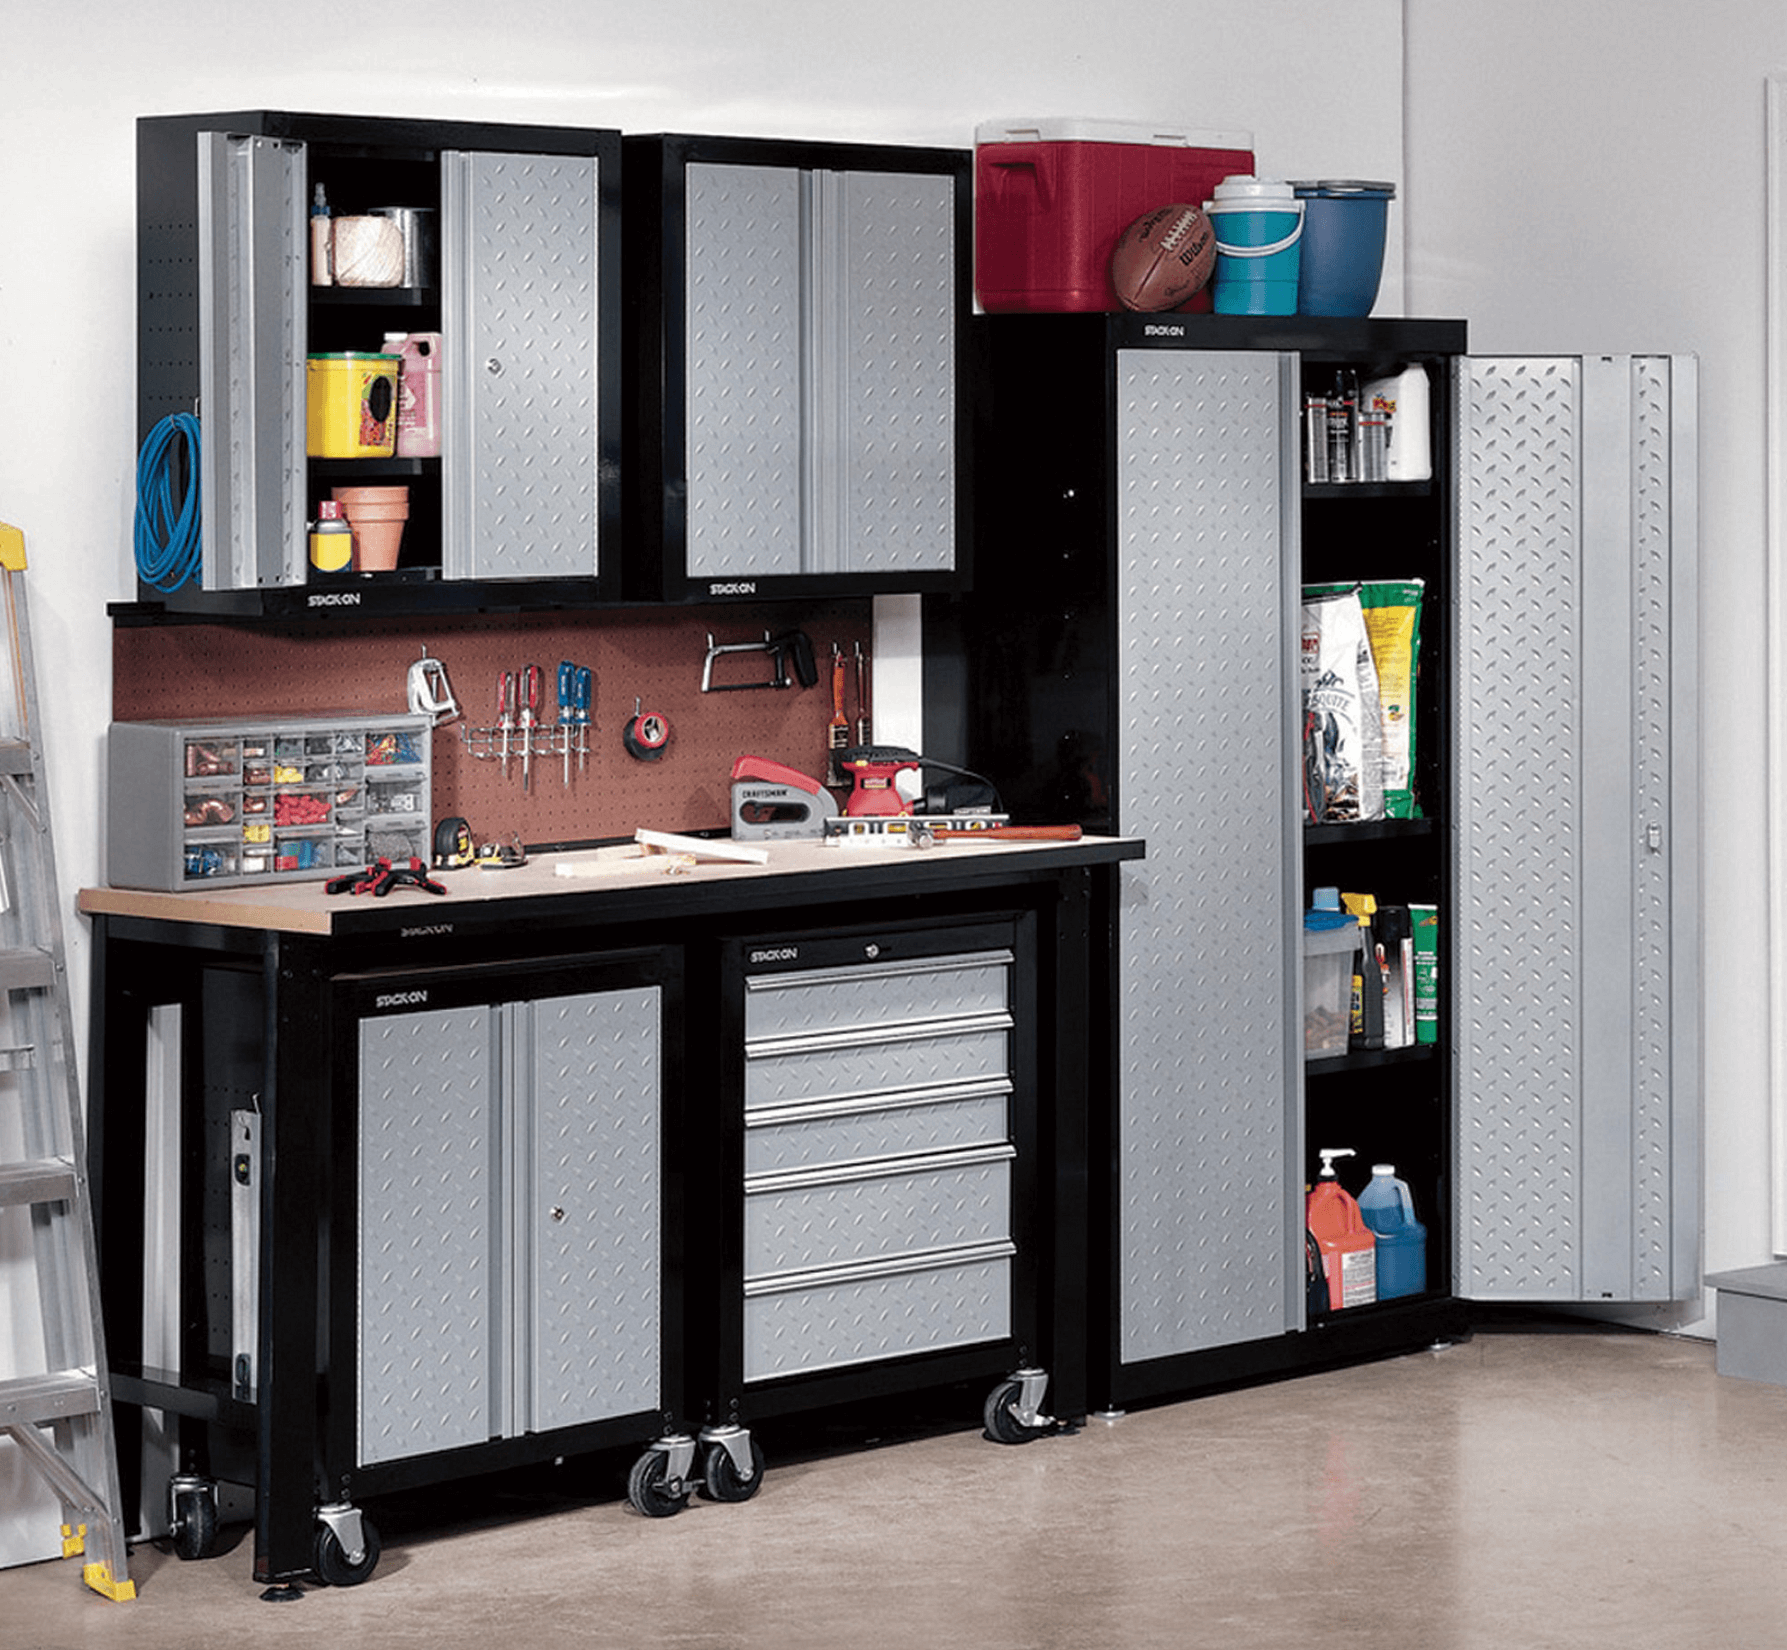 Small garage cabinet design ideas